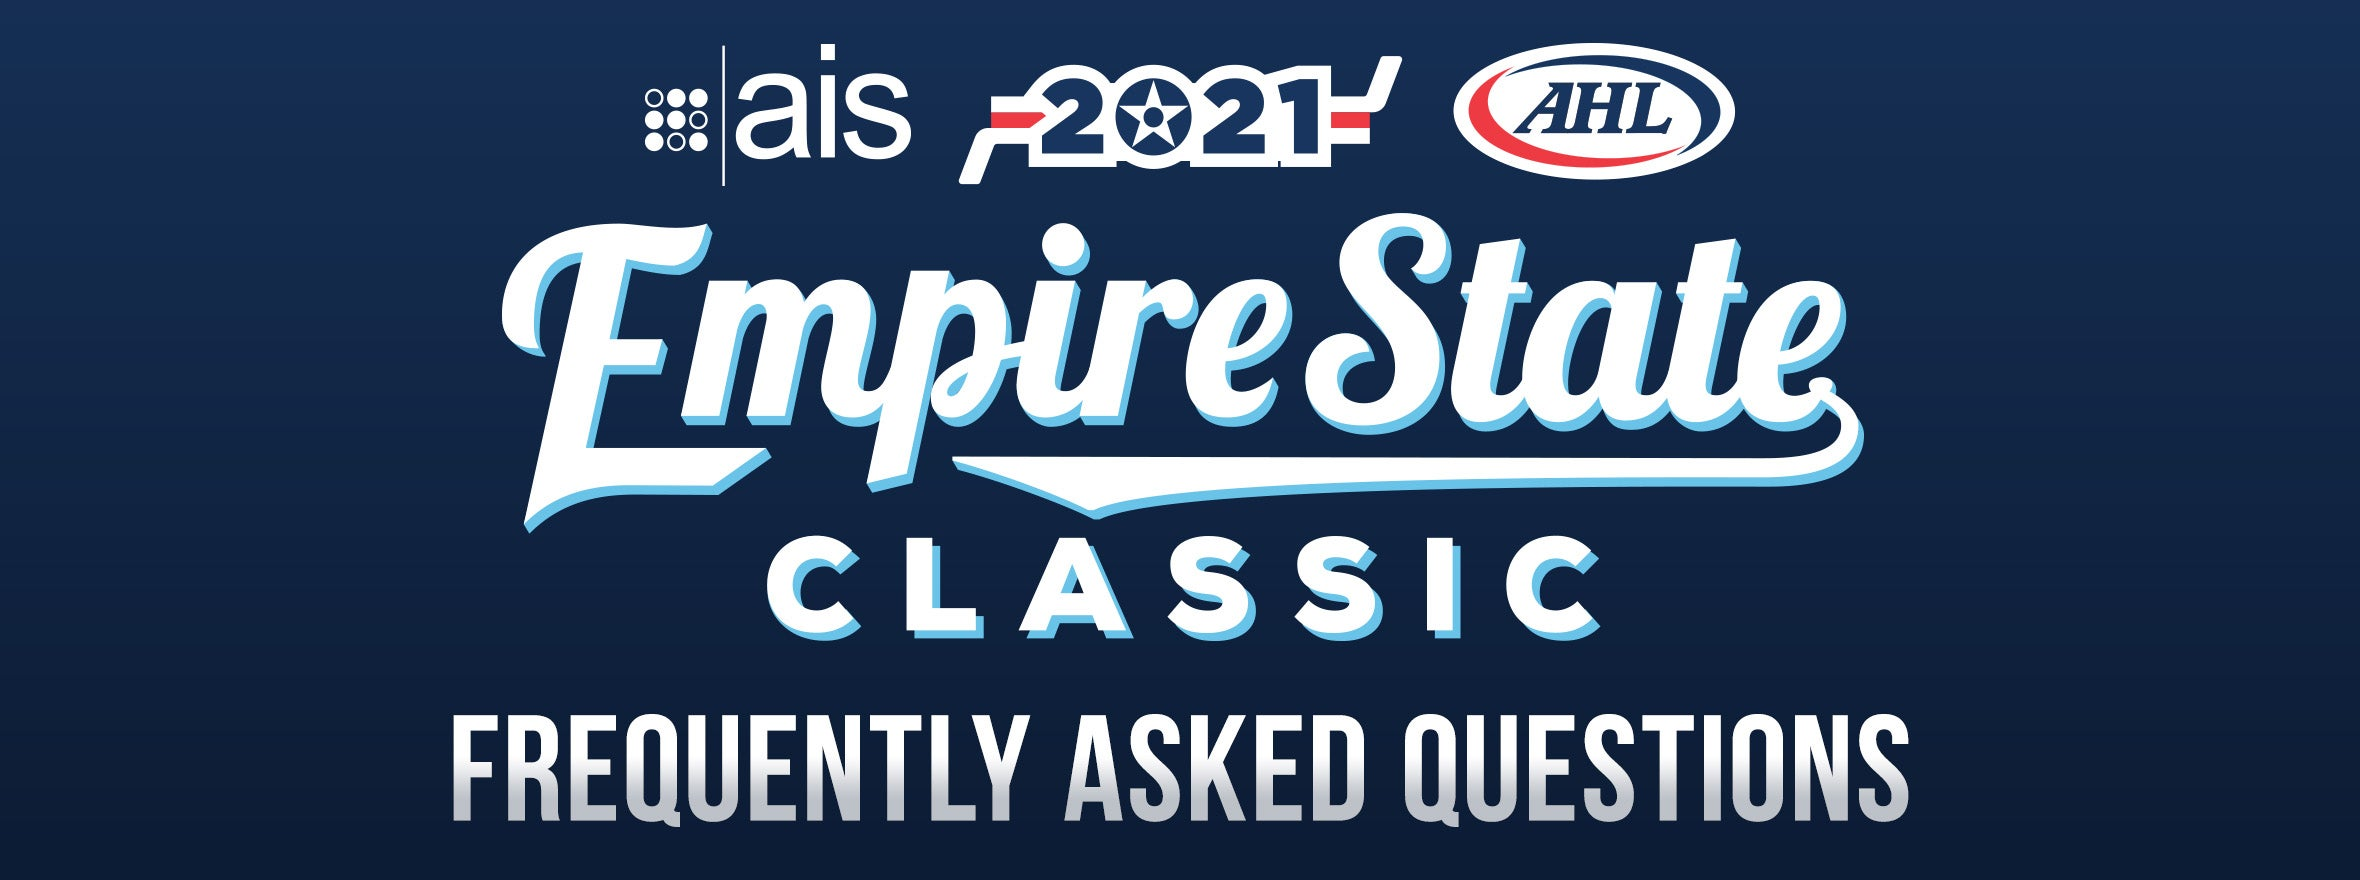 2021 AIS EMPIRE STATE CLASSIC FAQ